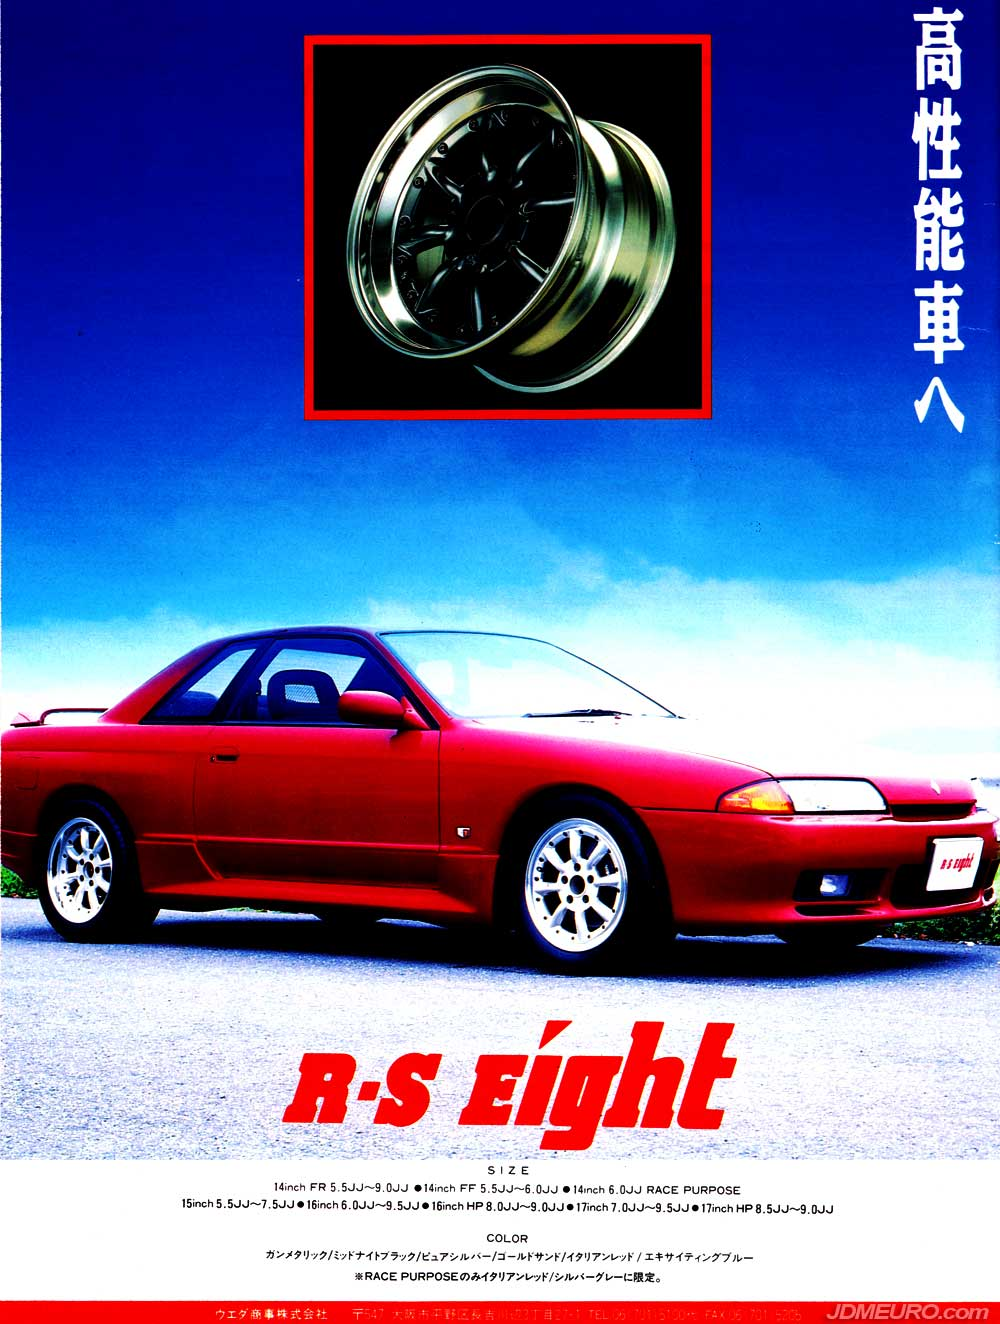 The Watanabe RS8 / Watanabe RS Eight are JDM Wheels made in collaboration with SSR Wheels / Speedstar Racing. The Watanabe RS8 / Watanabe RS Eight feature an 8 spoke design as the name implies, with 2 piece construction. Pictured are the Watanabe RS8 / Watanabe RS Eight mounted on a Nissan Skyline R32.